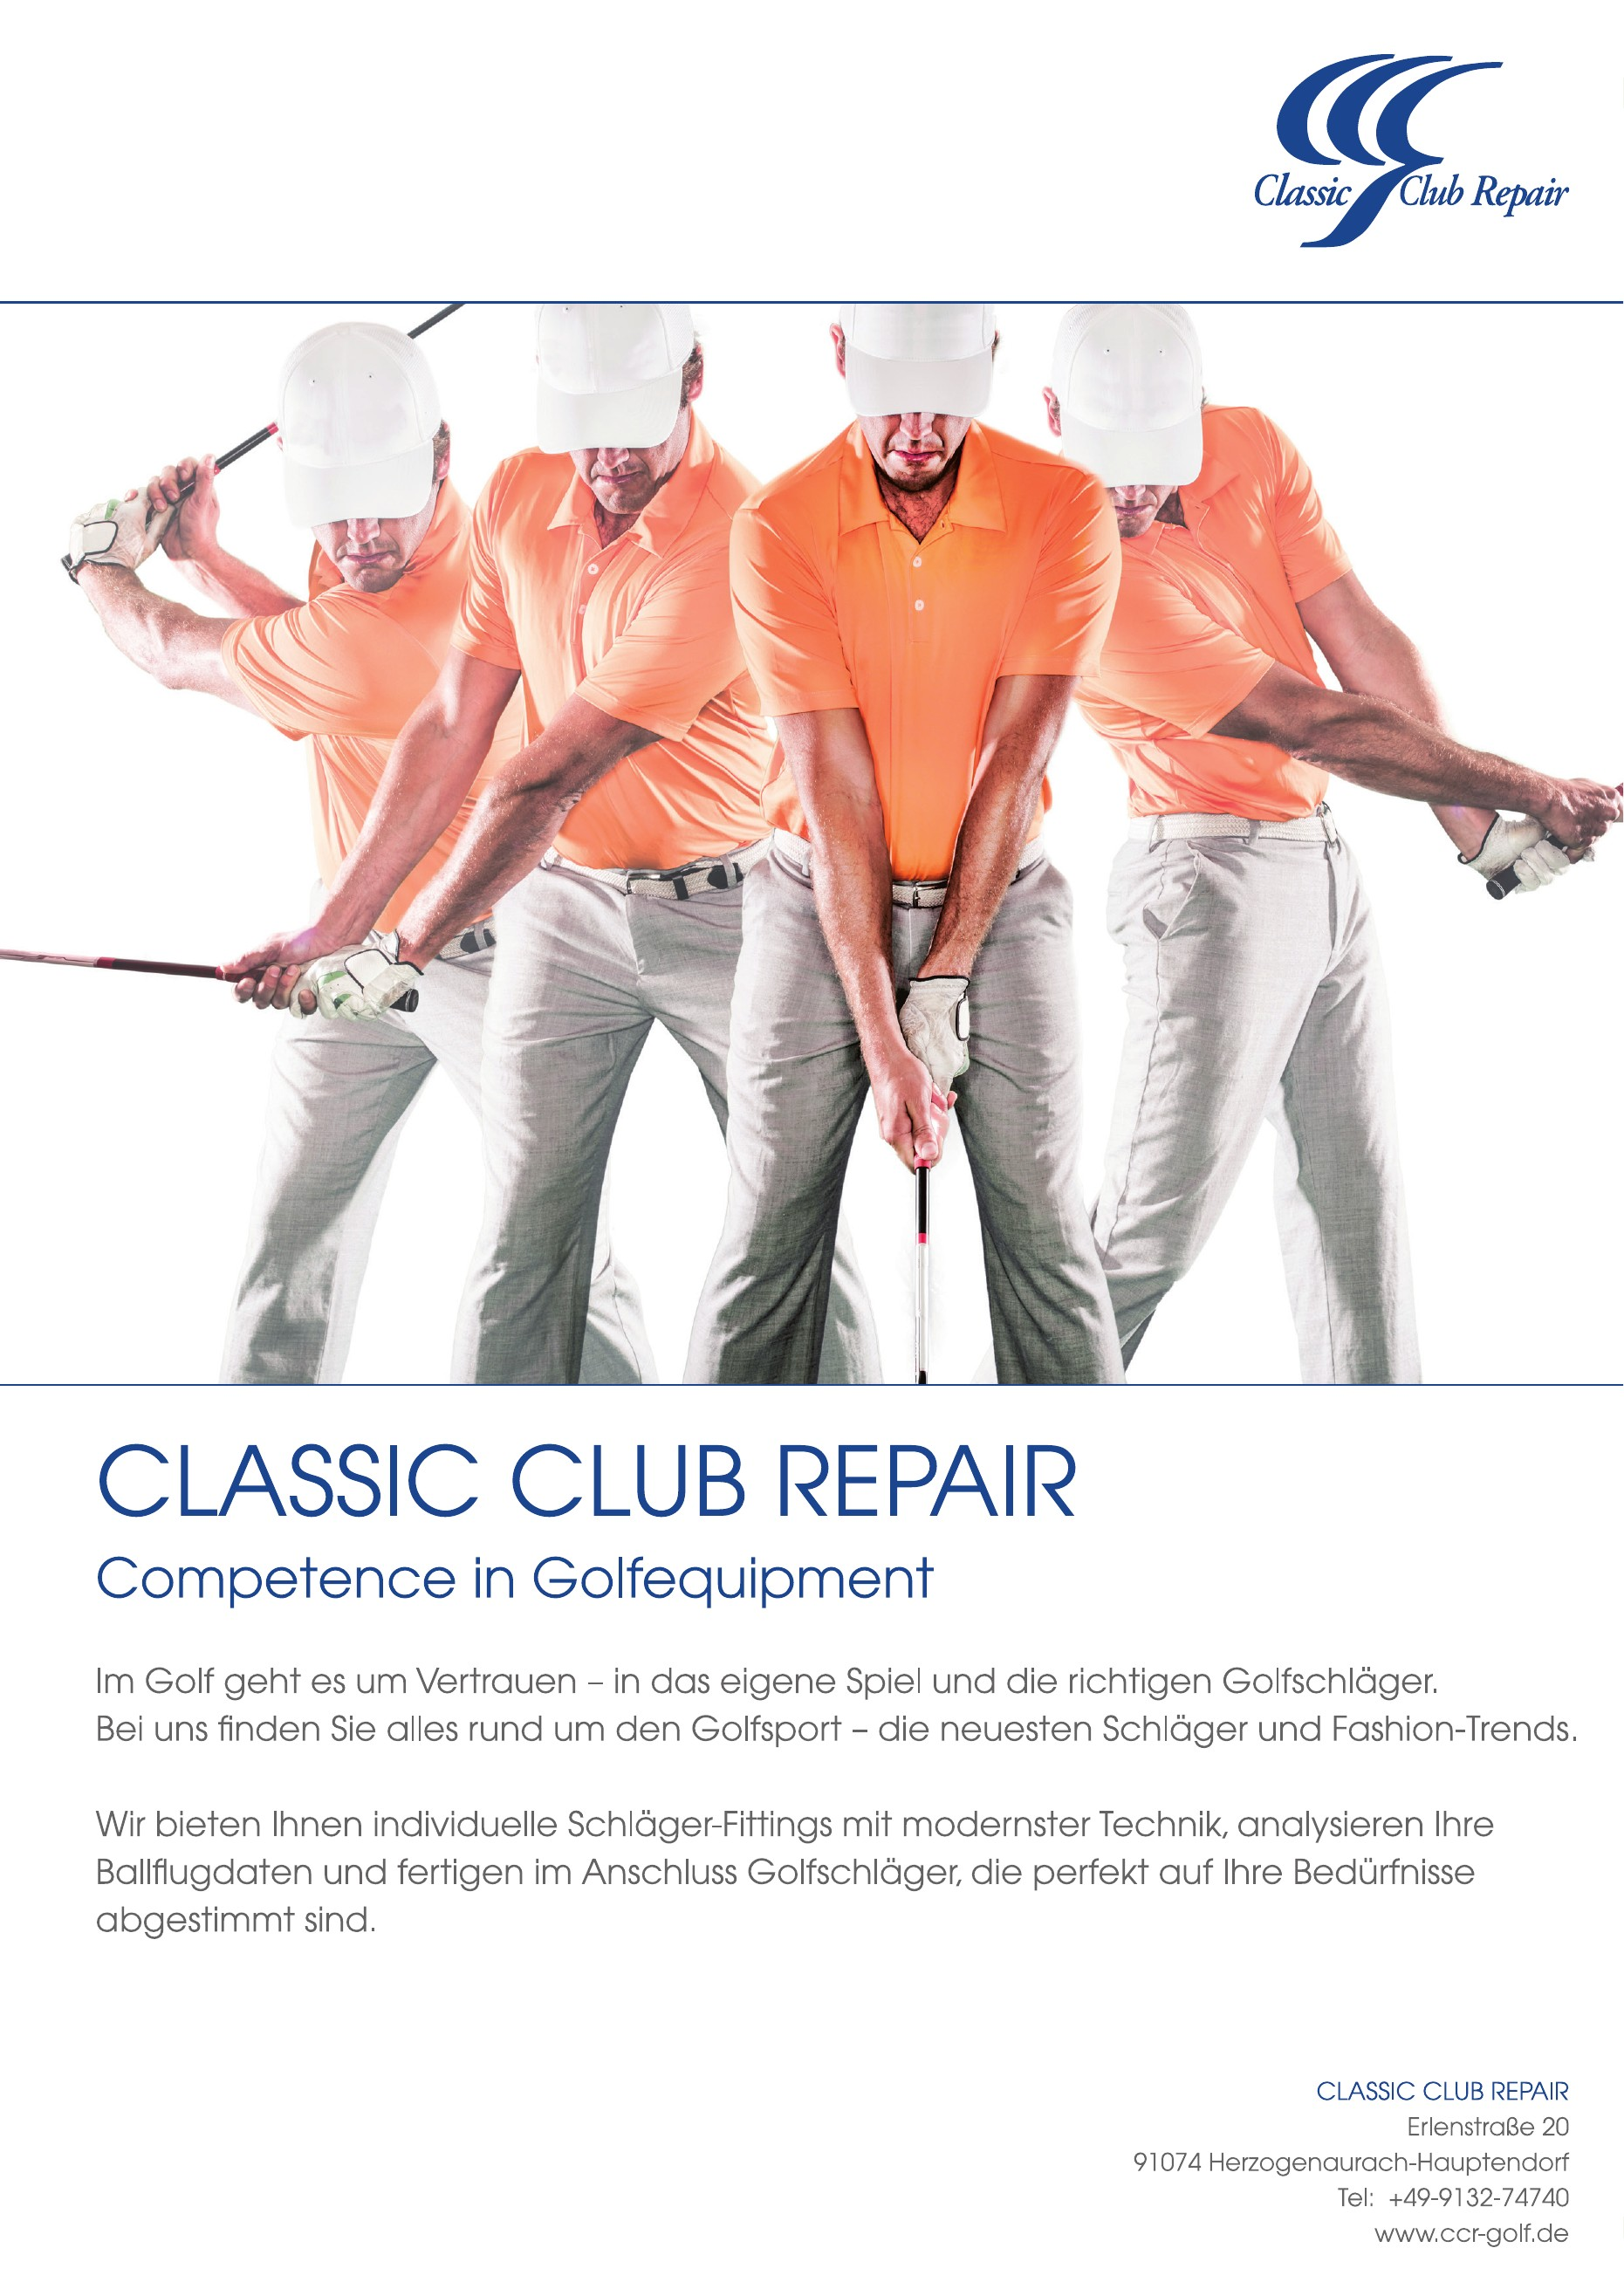 Classic Club Repair